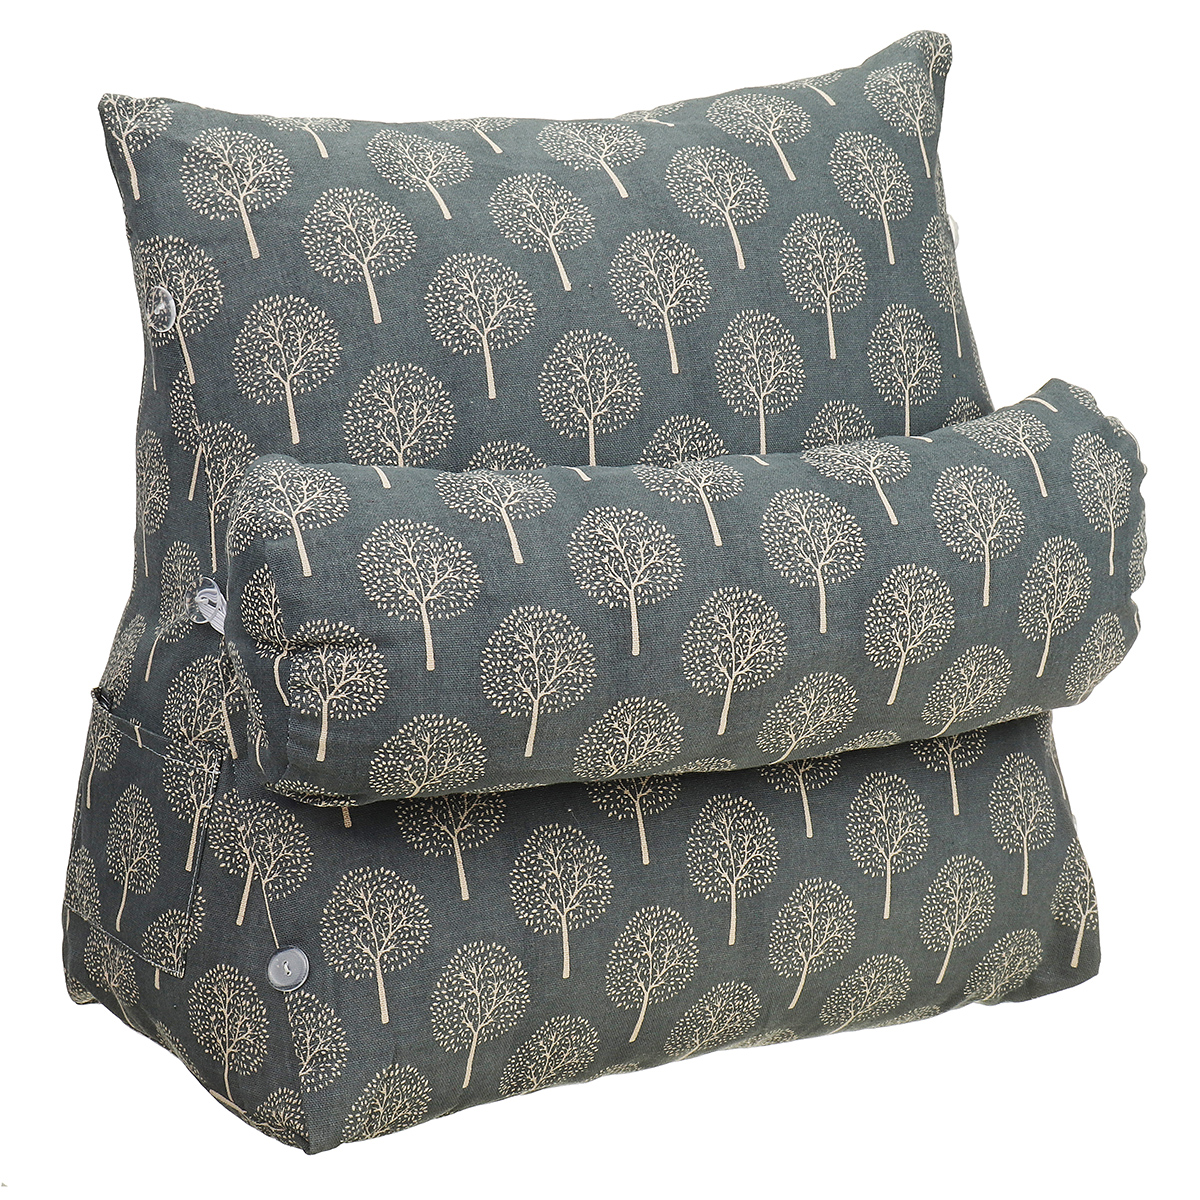 backrest pillow back cushion reading pillow bed wedge adult backrest lounge cushion with pockets back support for sitting up in bed couch wedge